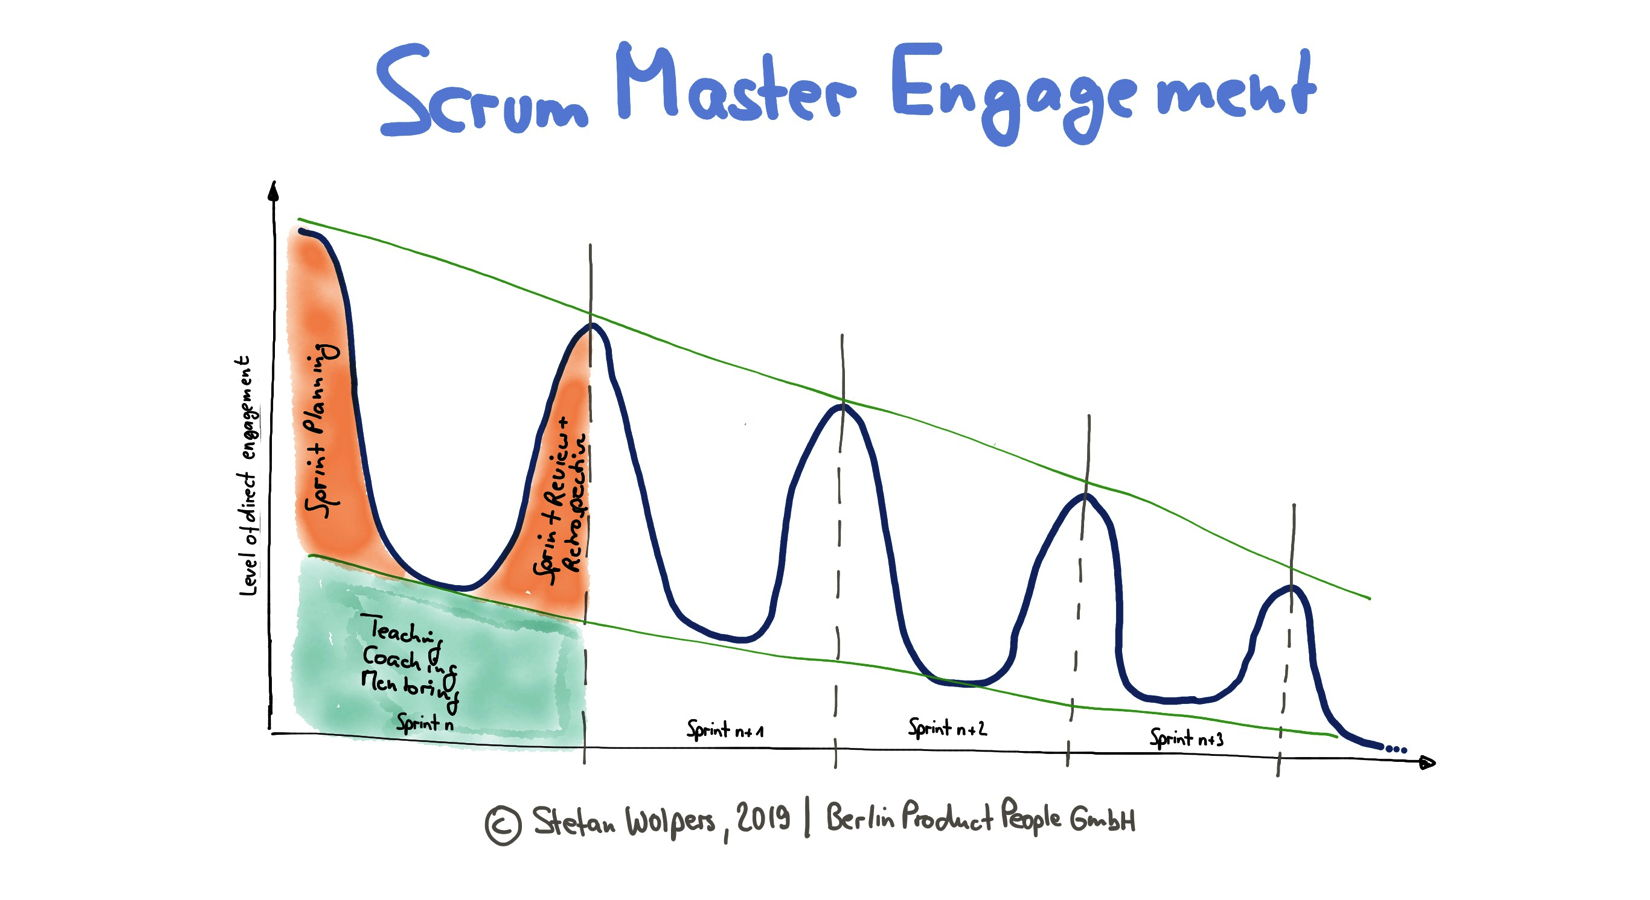 Scrum Master Engagement Patterns: The Sprint Level